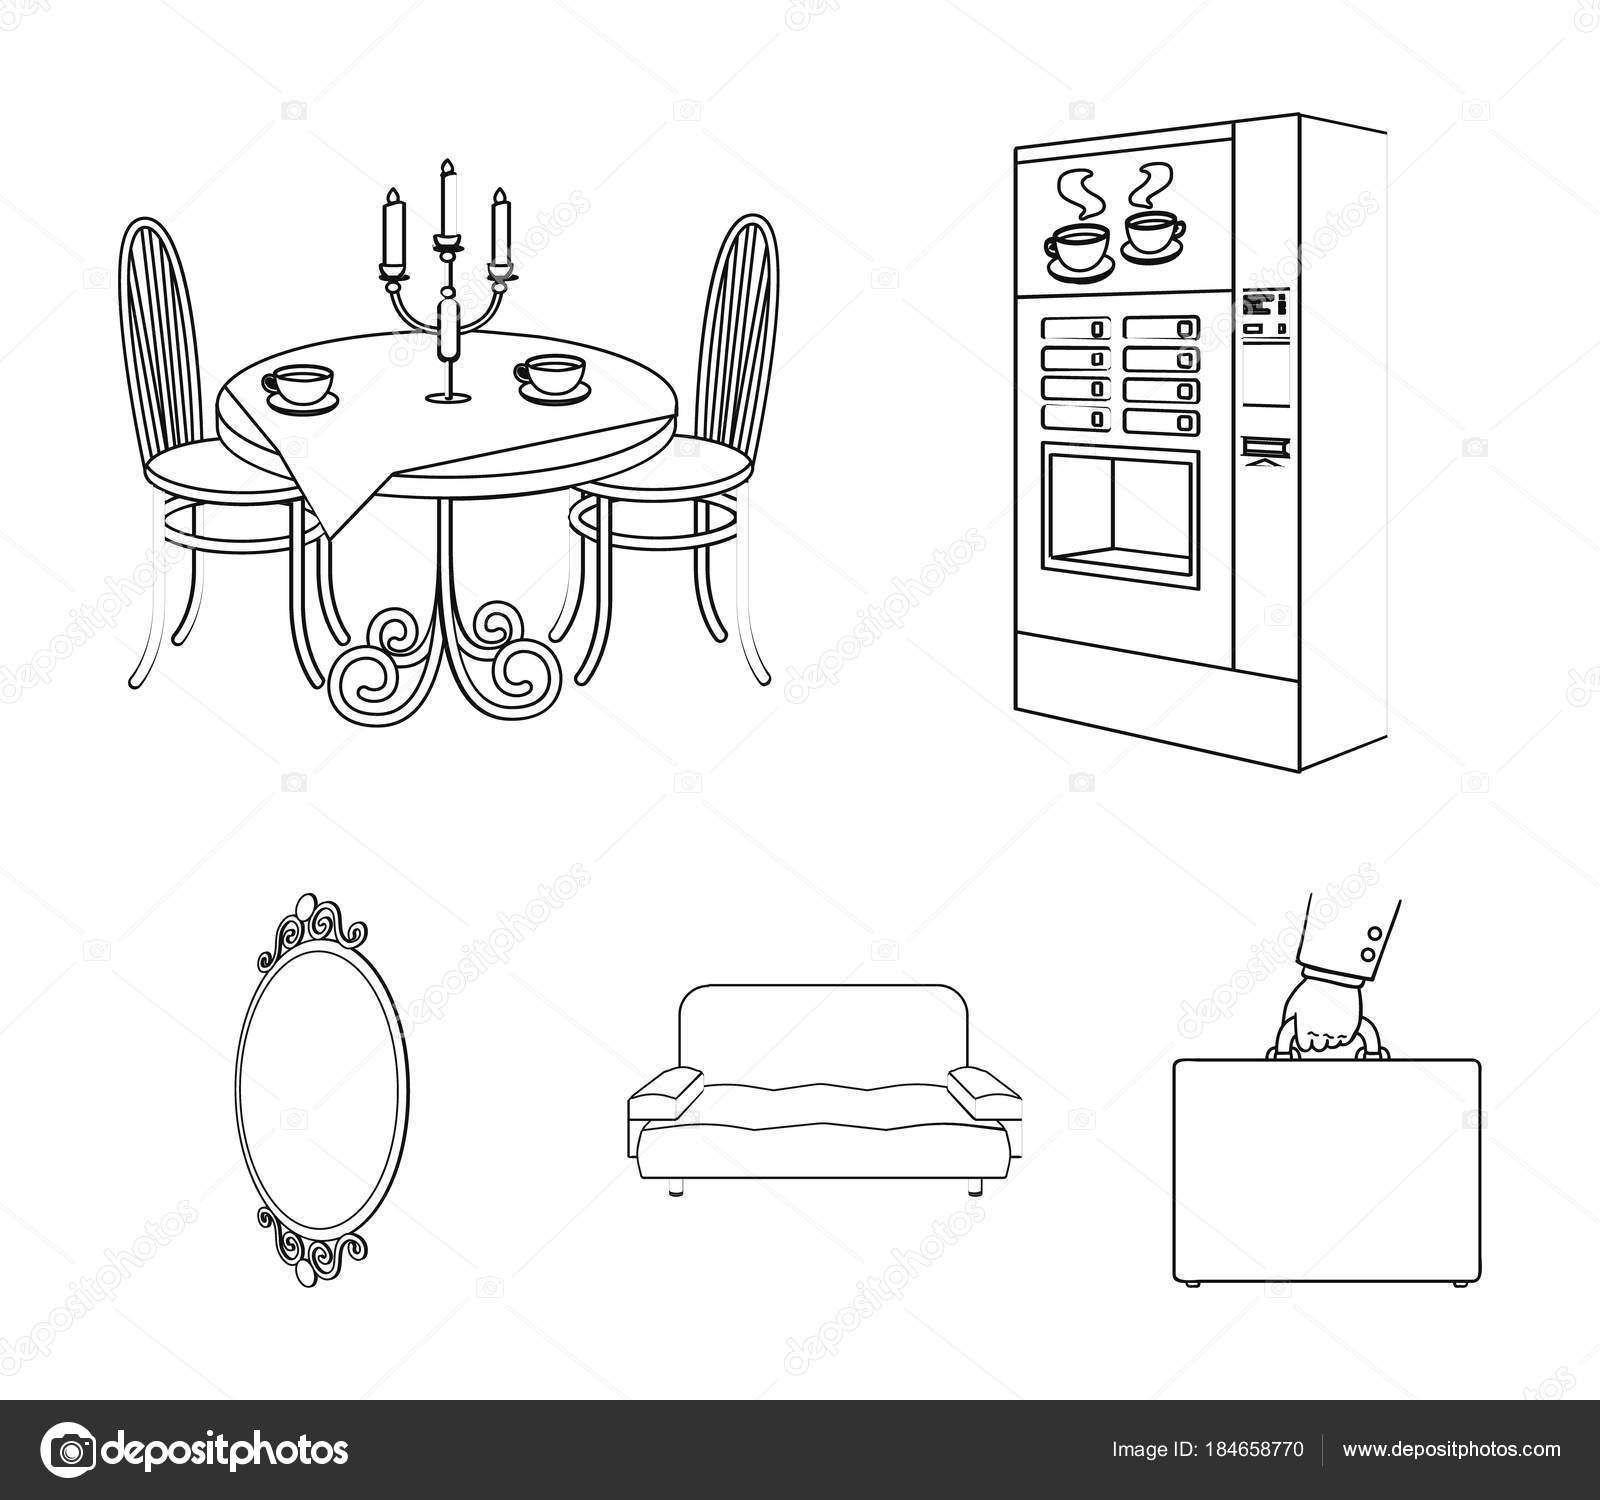 Coffee maker, served table in the restaurant and other web